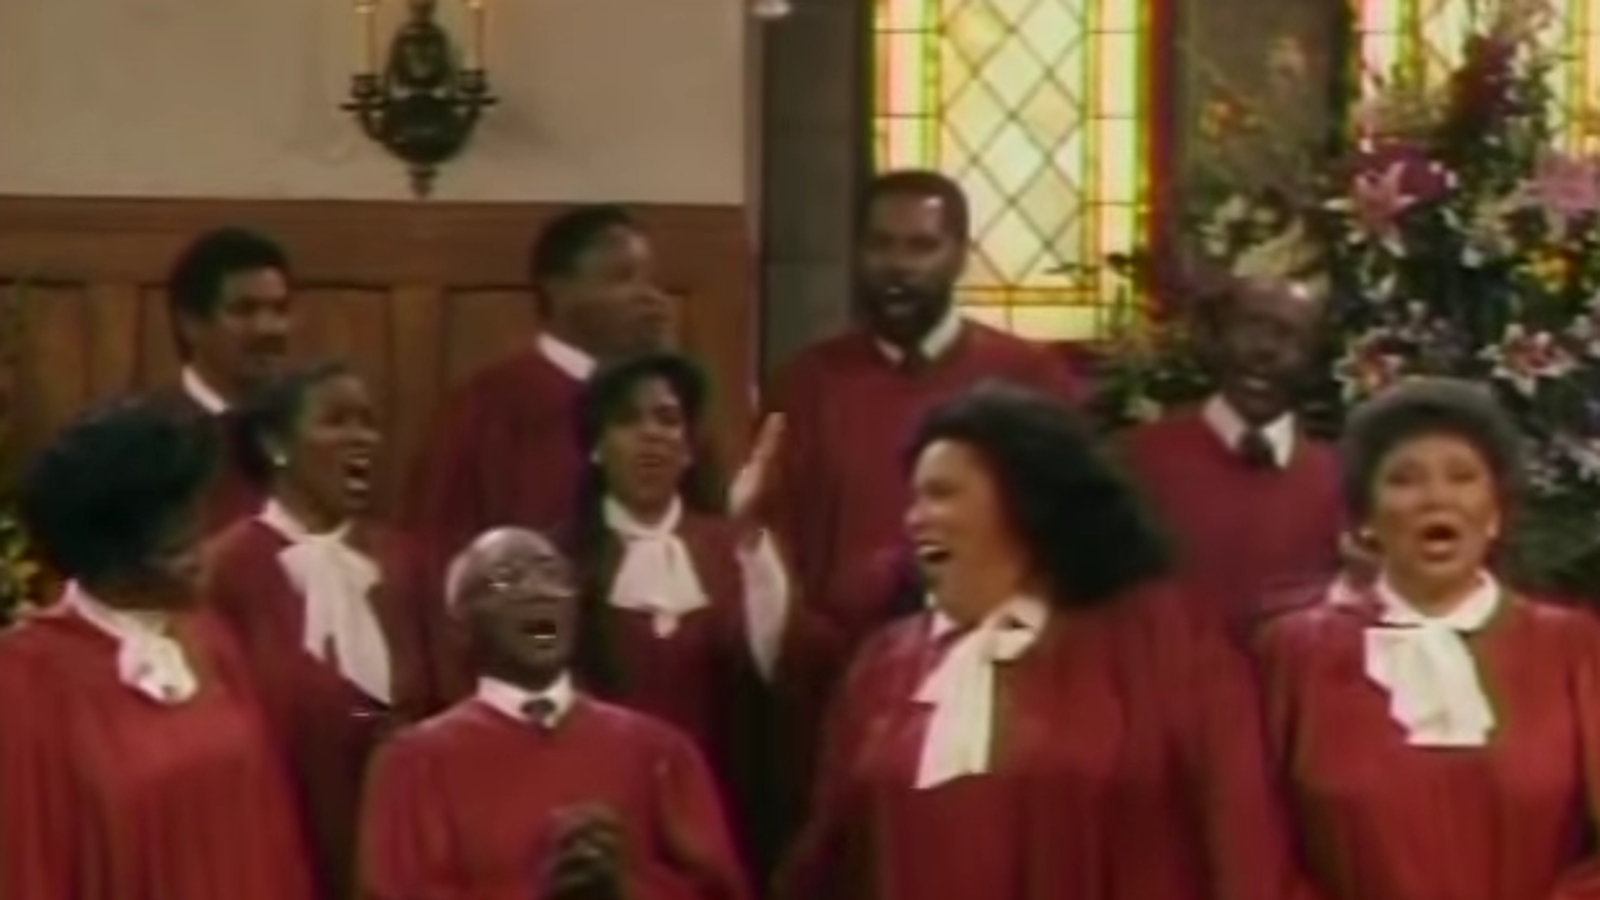 Everything You Wanted to Know About Church Music but Were Afraid to Ask